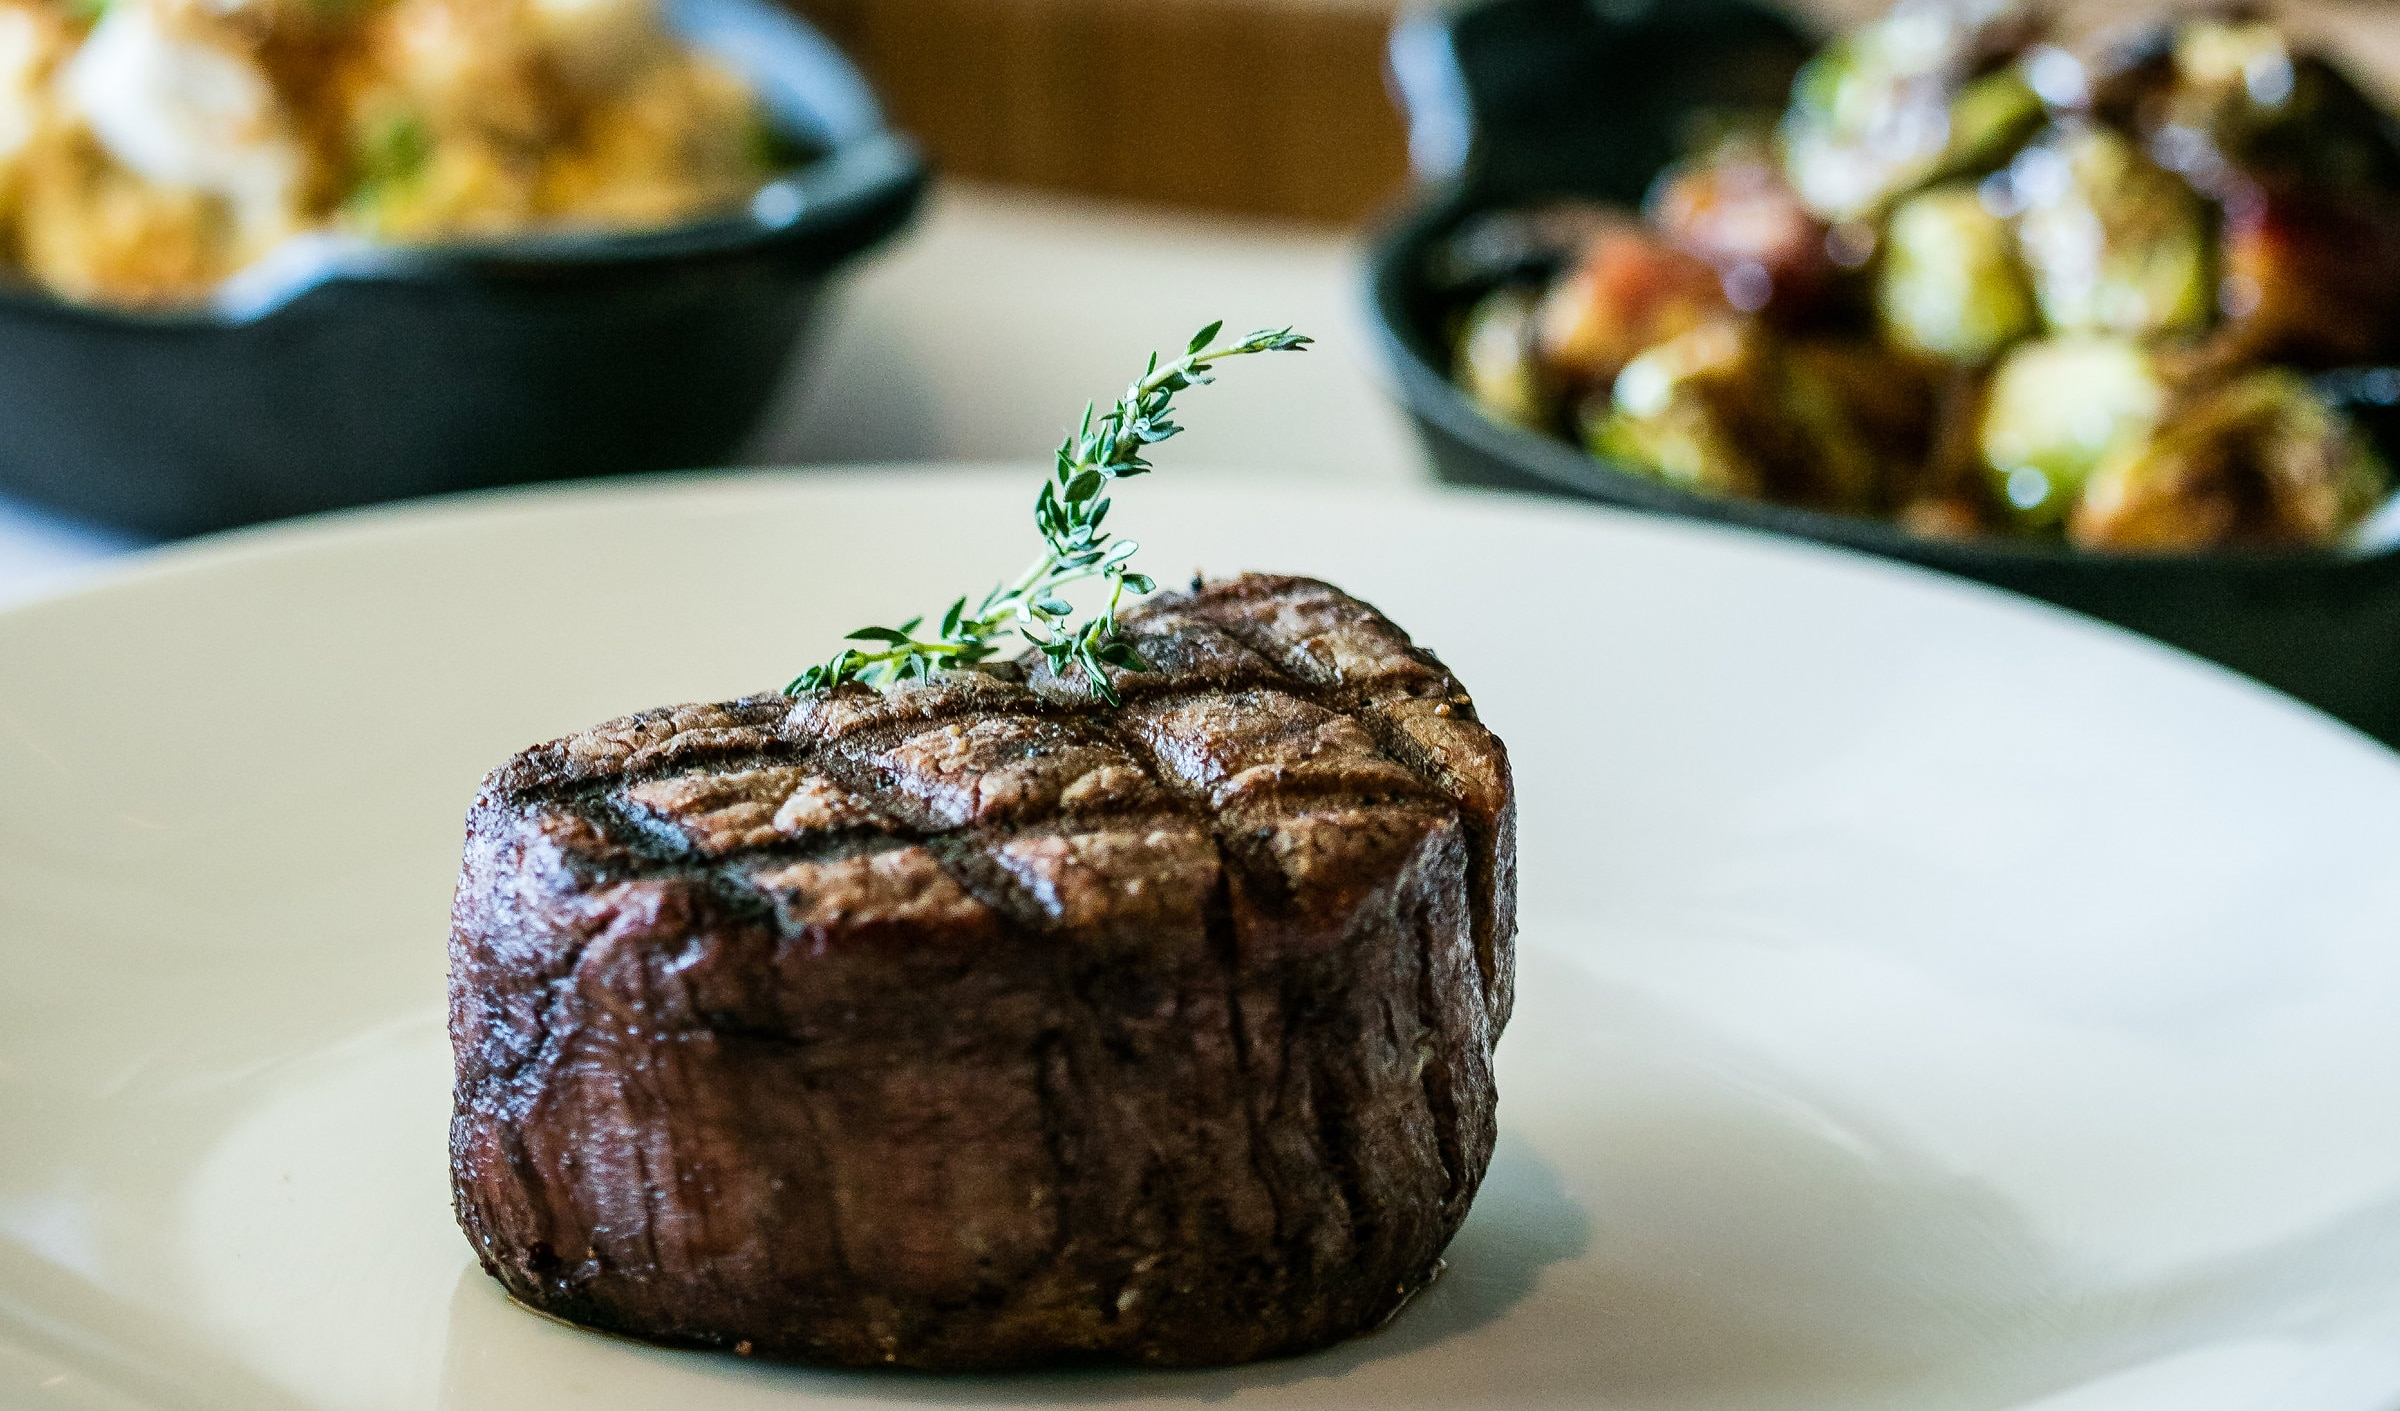 A filet mignon steak served at Shula's Steak House at the Walt Disney World Dolphin Resort